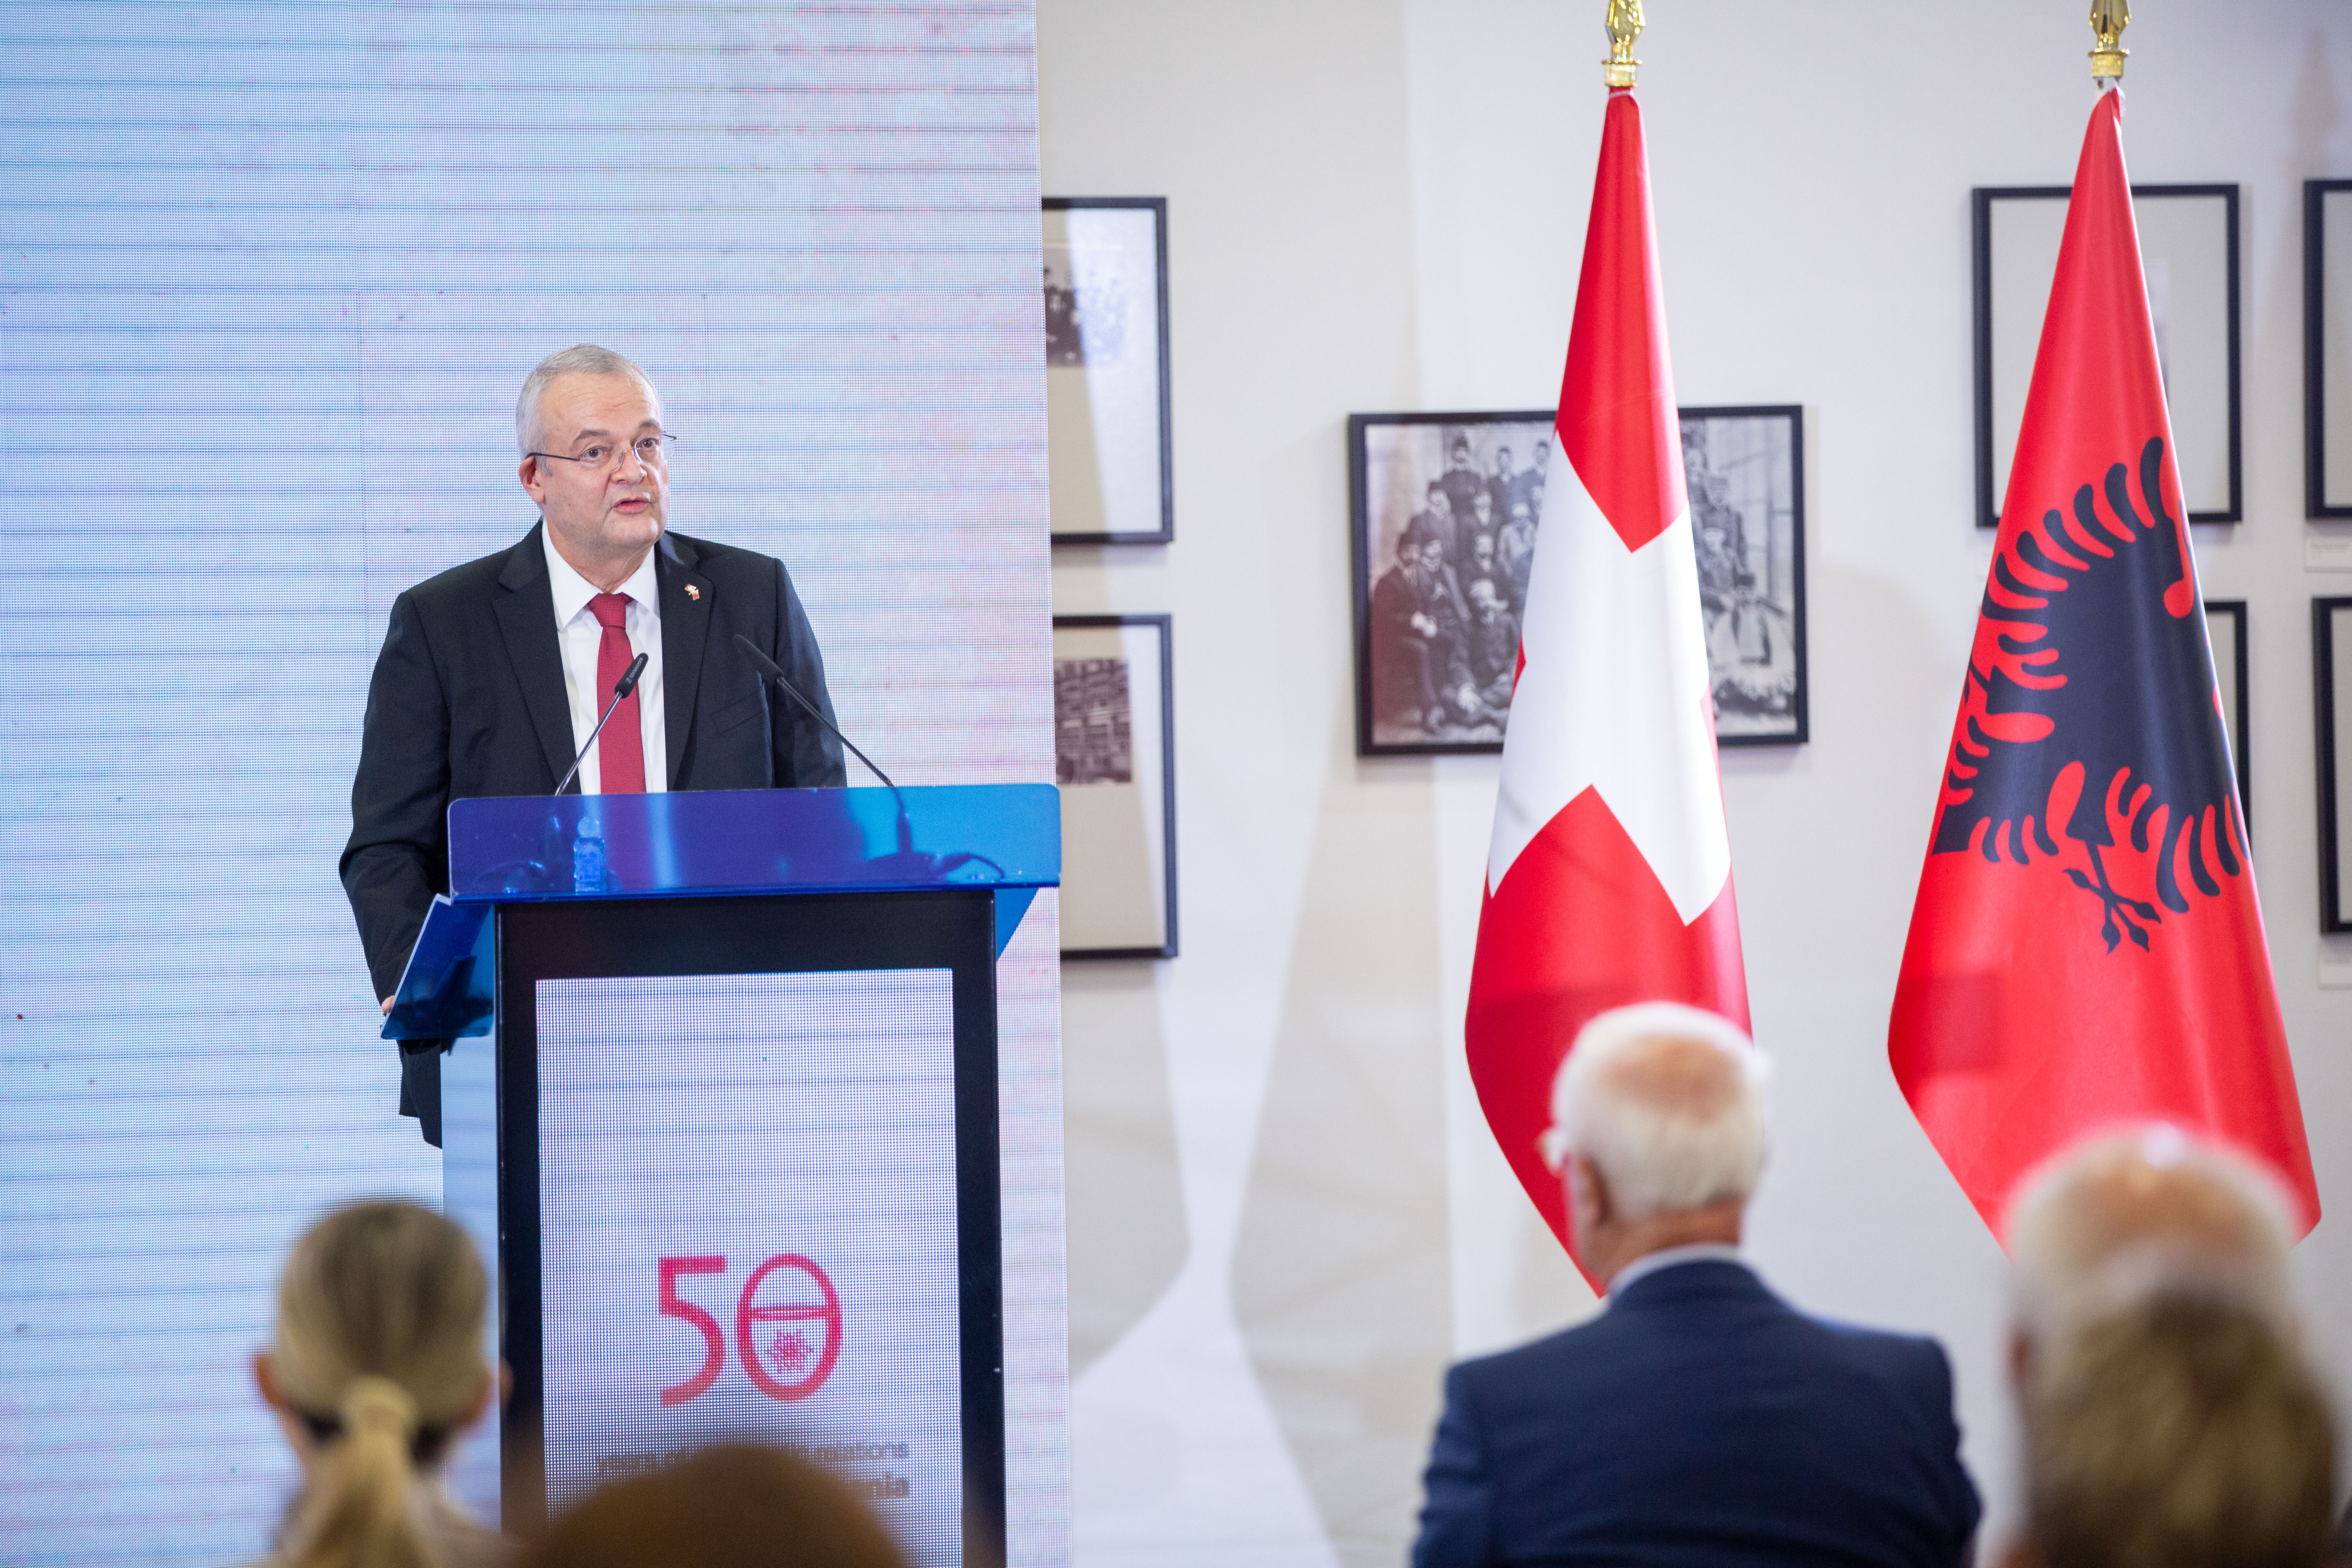 On September 29th, 2020, a key event celebrated 50 years of Swiss-Albanian official relations.